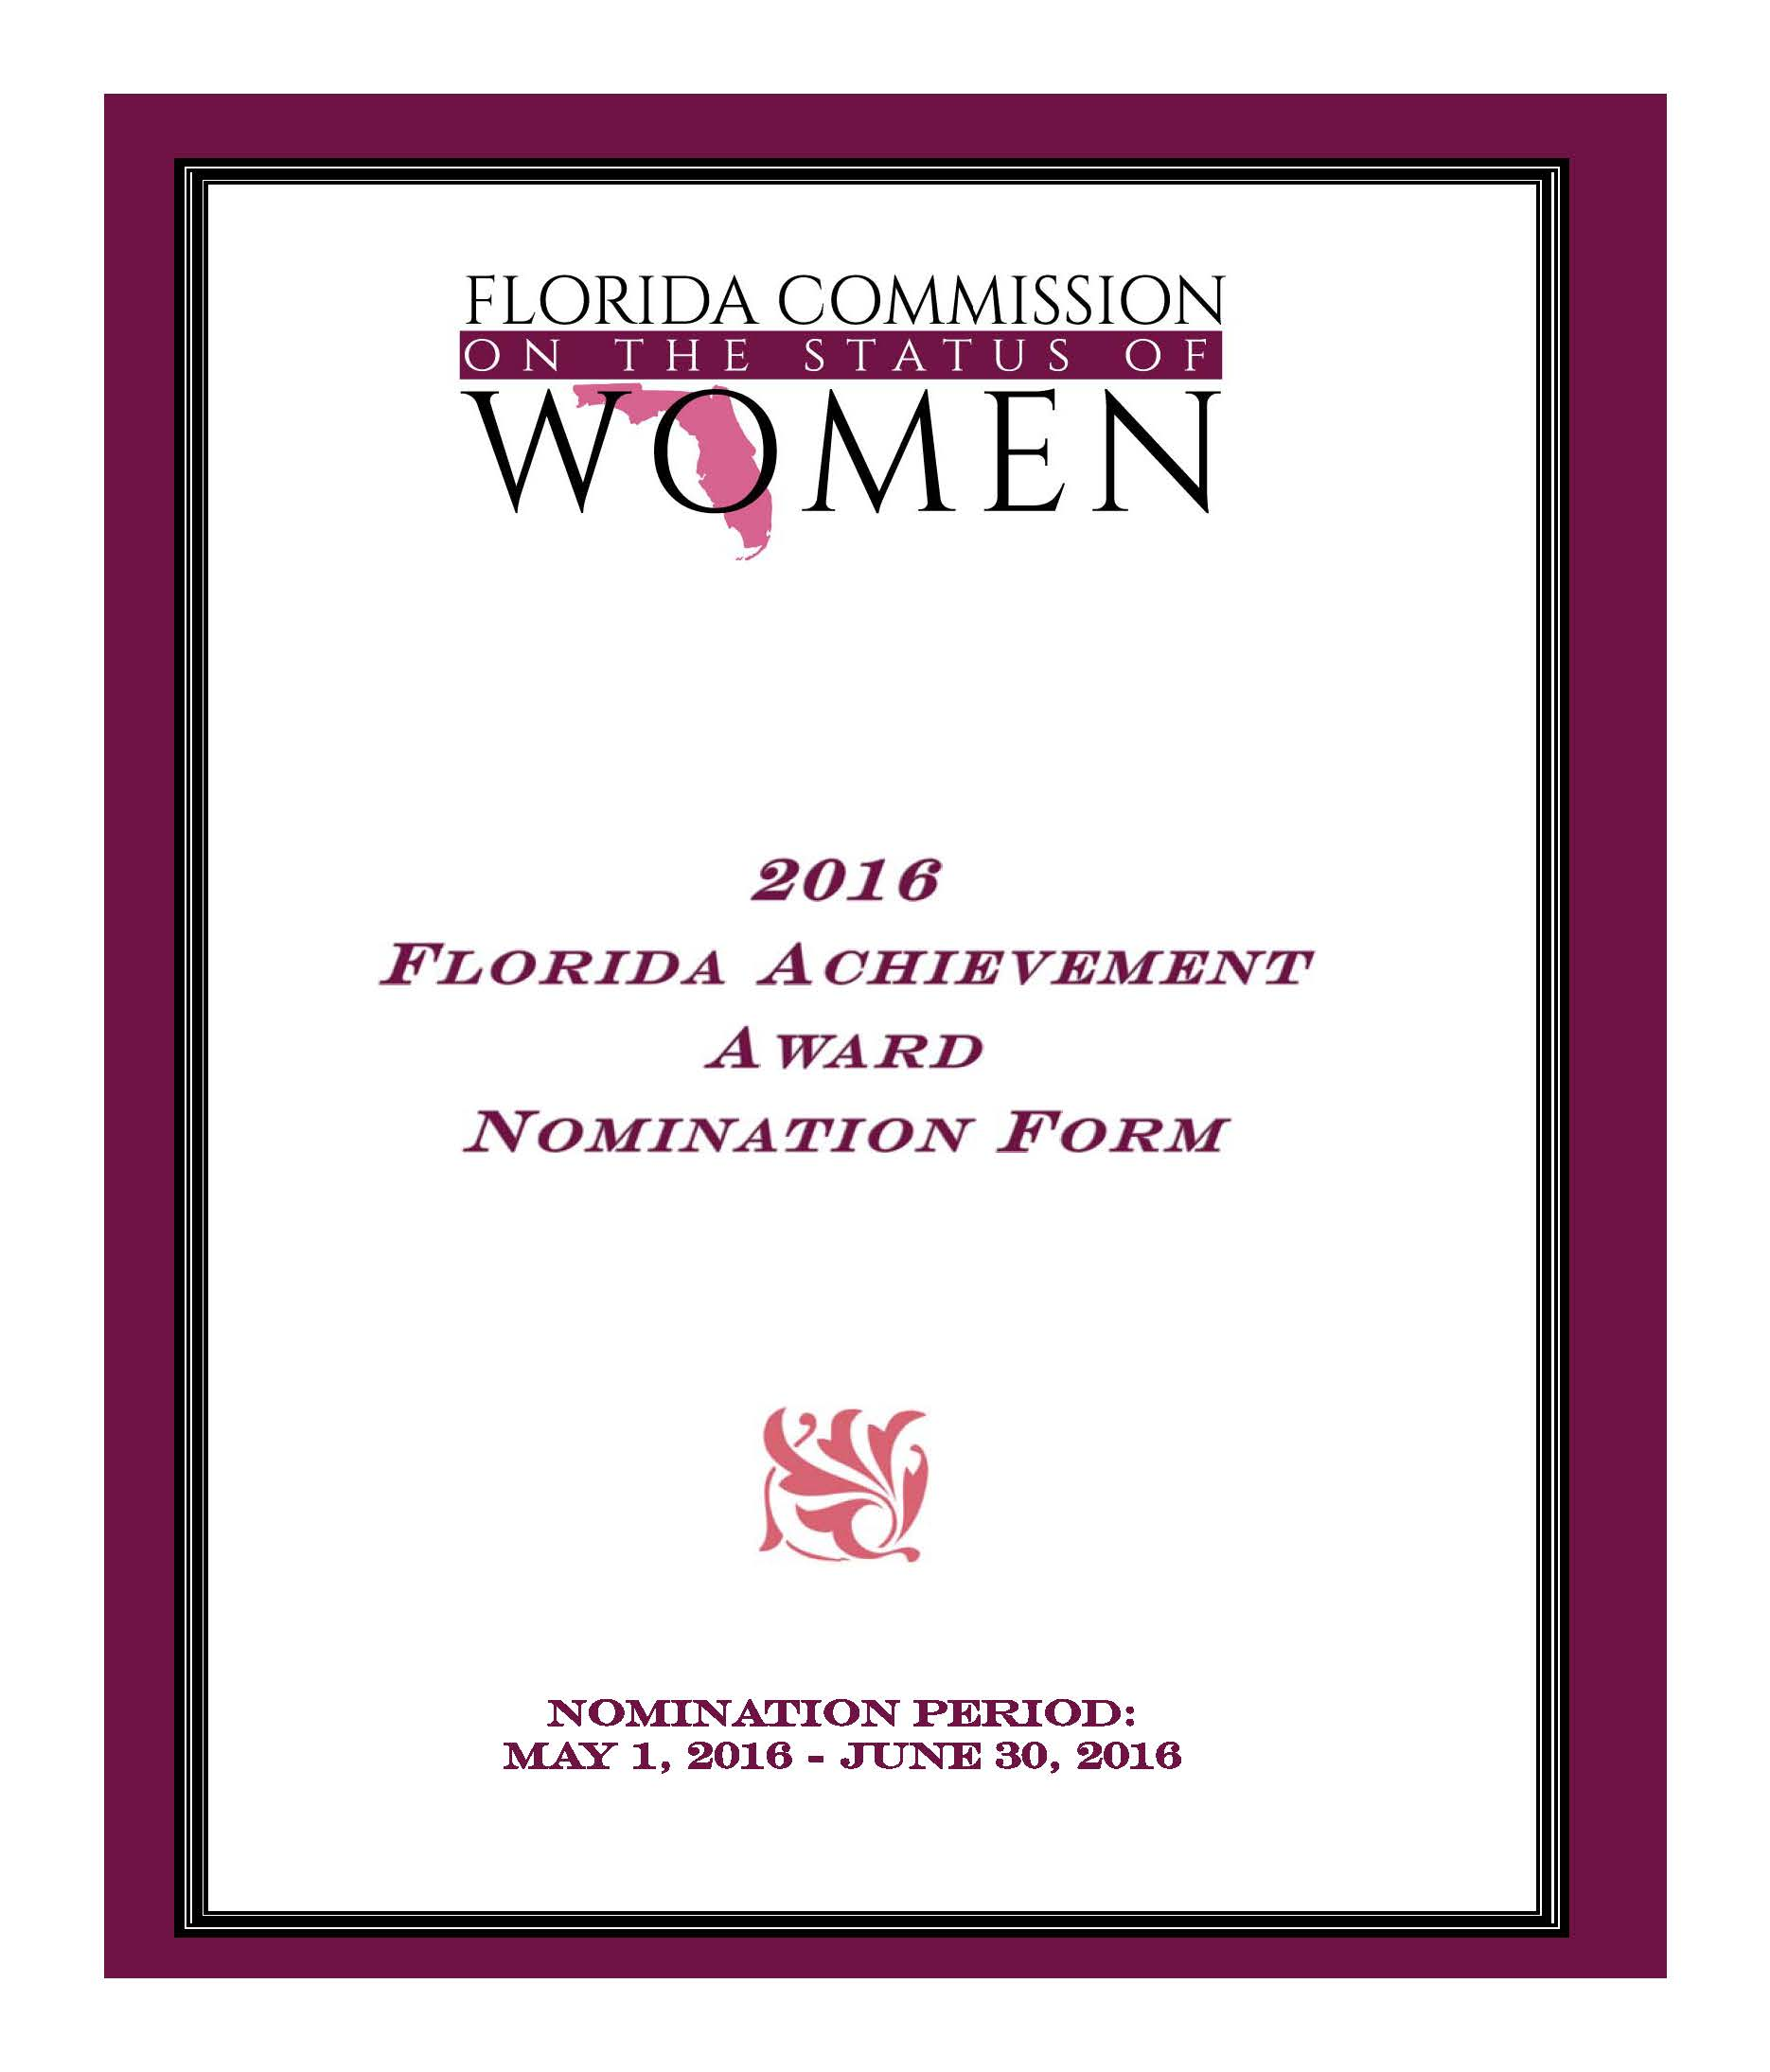 Florida commission on the status of women fcsw florida if you have any questions regarding the florida achievement award please contact the commission office at 850 414 3300 thank you in advance for your xflitez Image collections